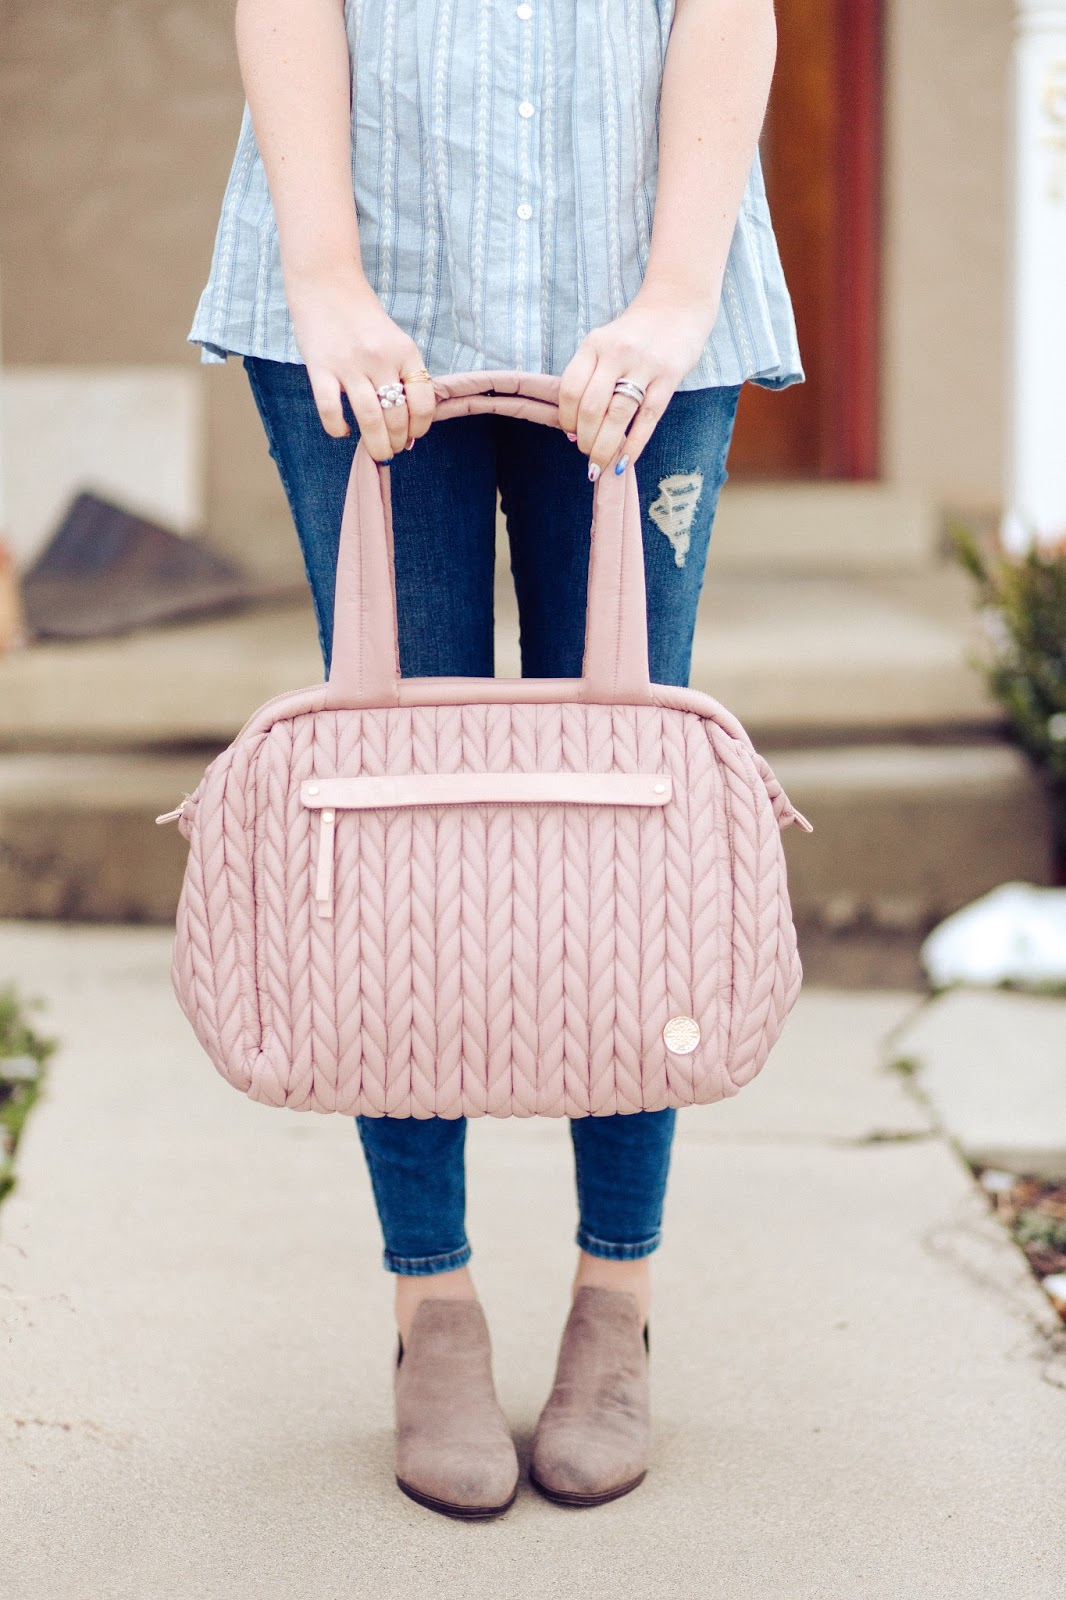 HAPP Diaper Bag, Pink Diaper Bag, Cutest Diaper Bag